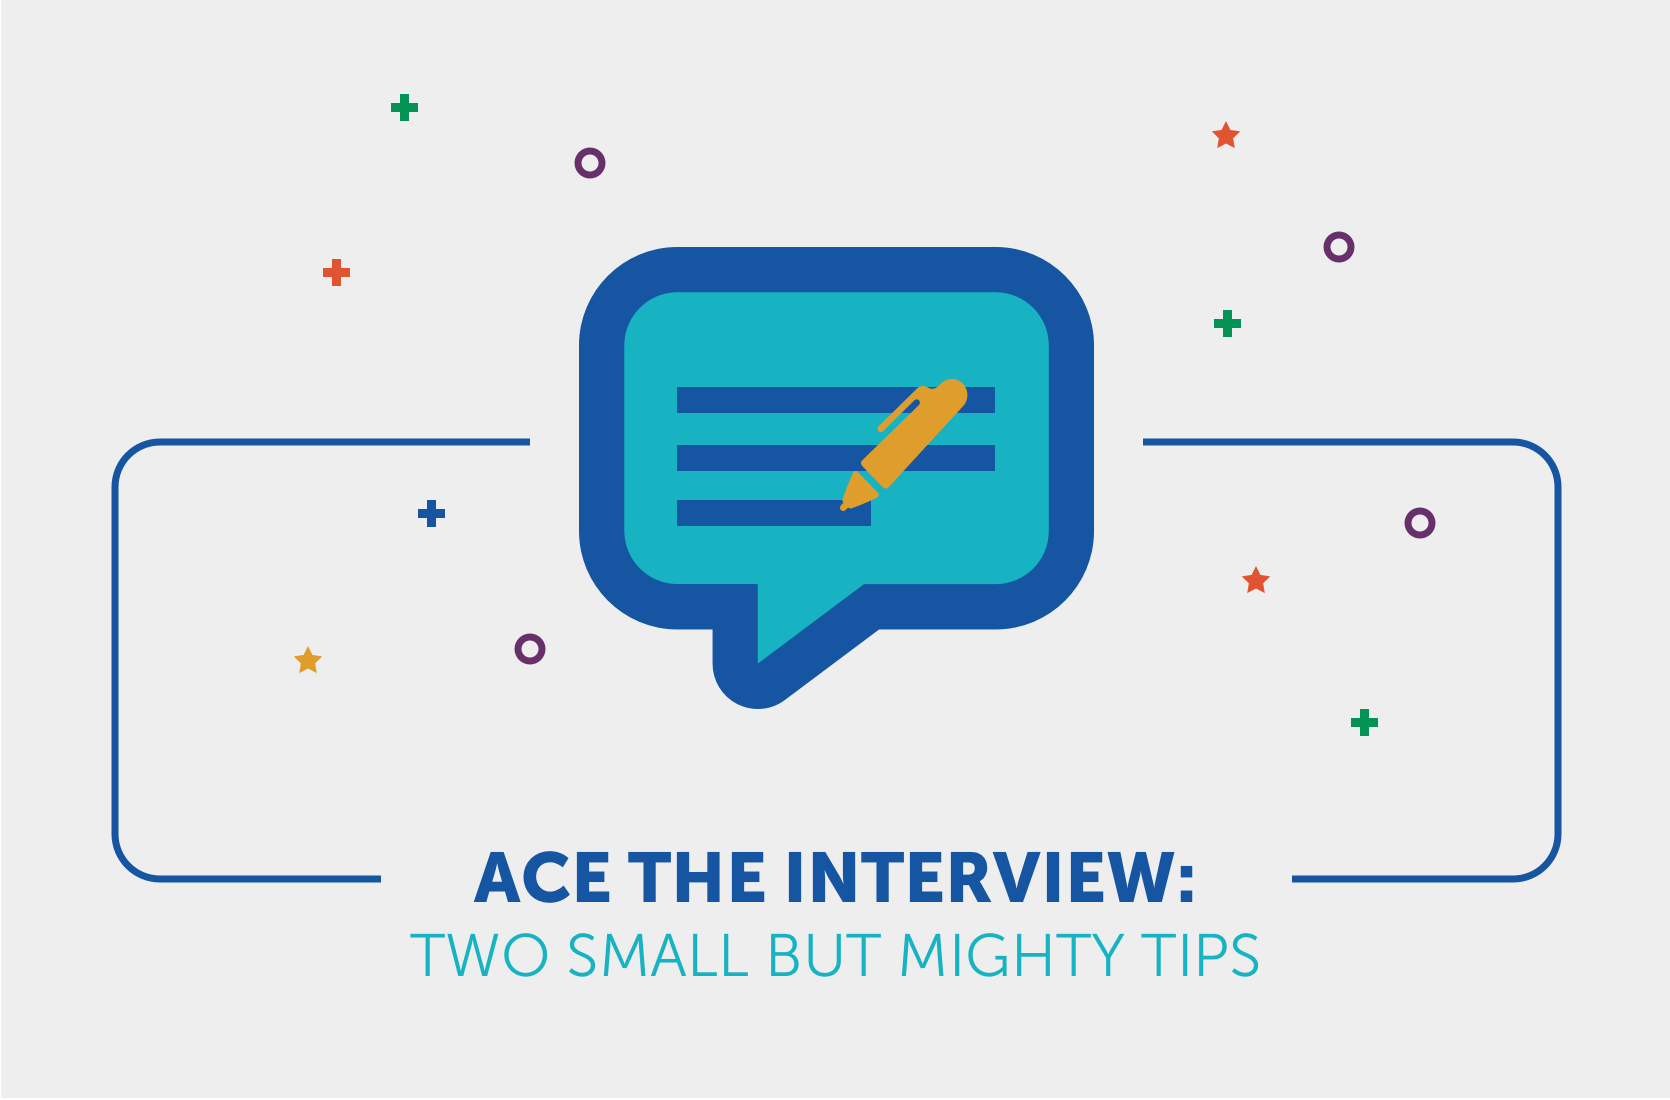 Ace the interview  two small but mighty tips v2